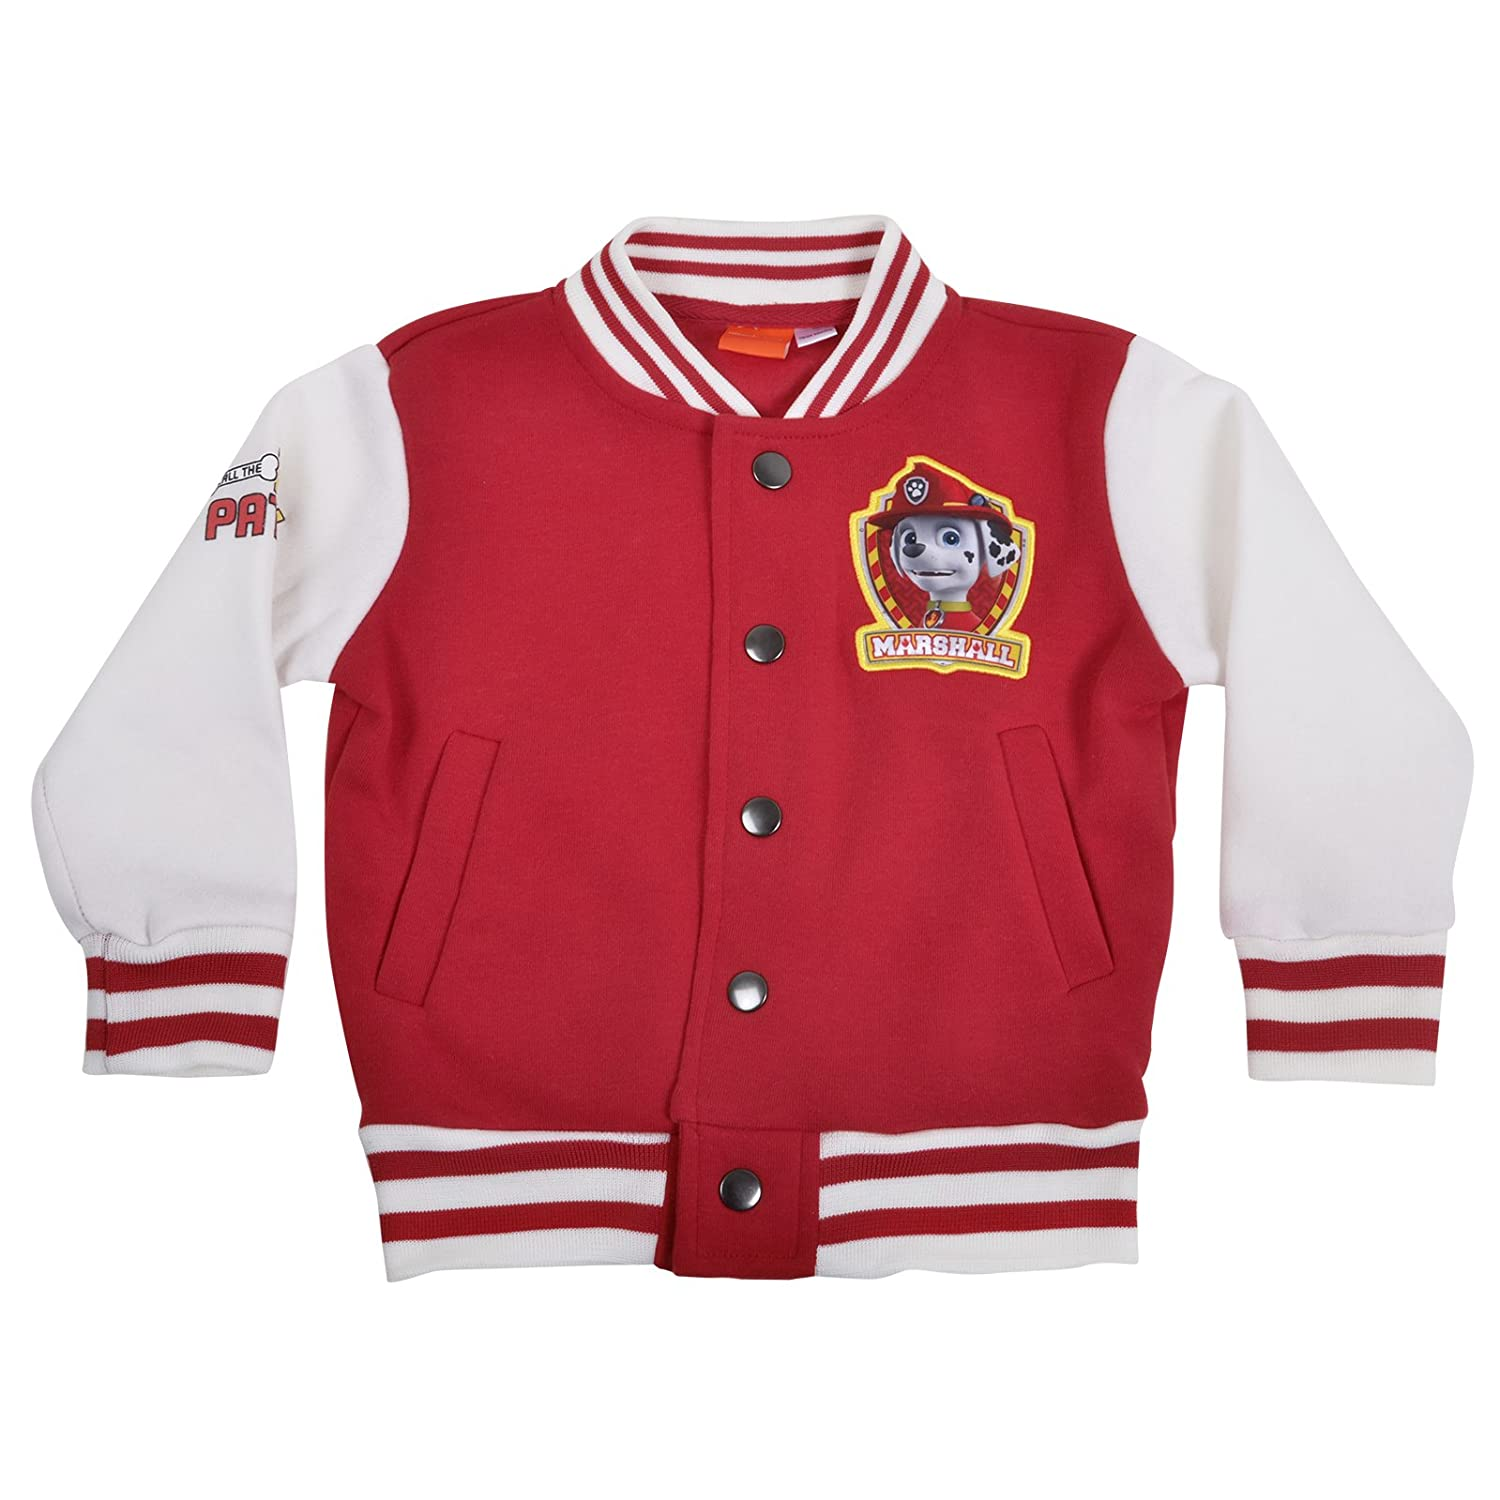 Paw Patrol Baseball Jackets - Marshall 18-24 Months: Amazon.co.uk ...